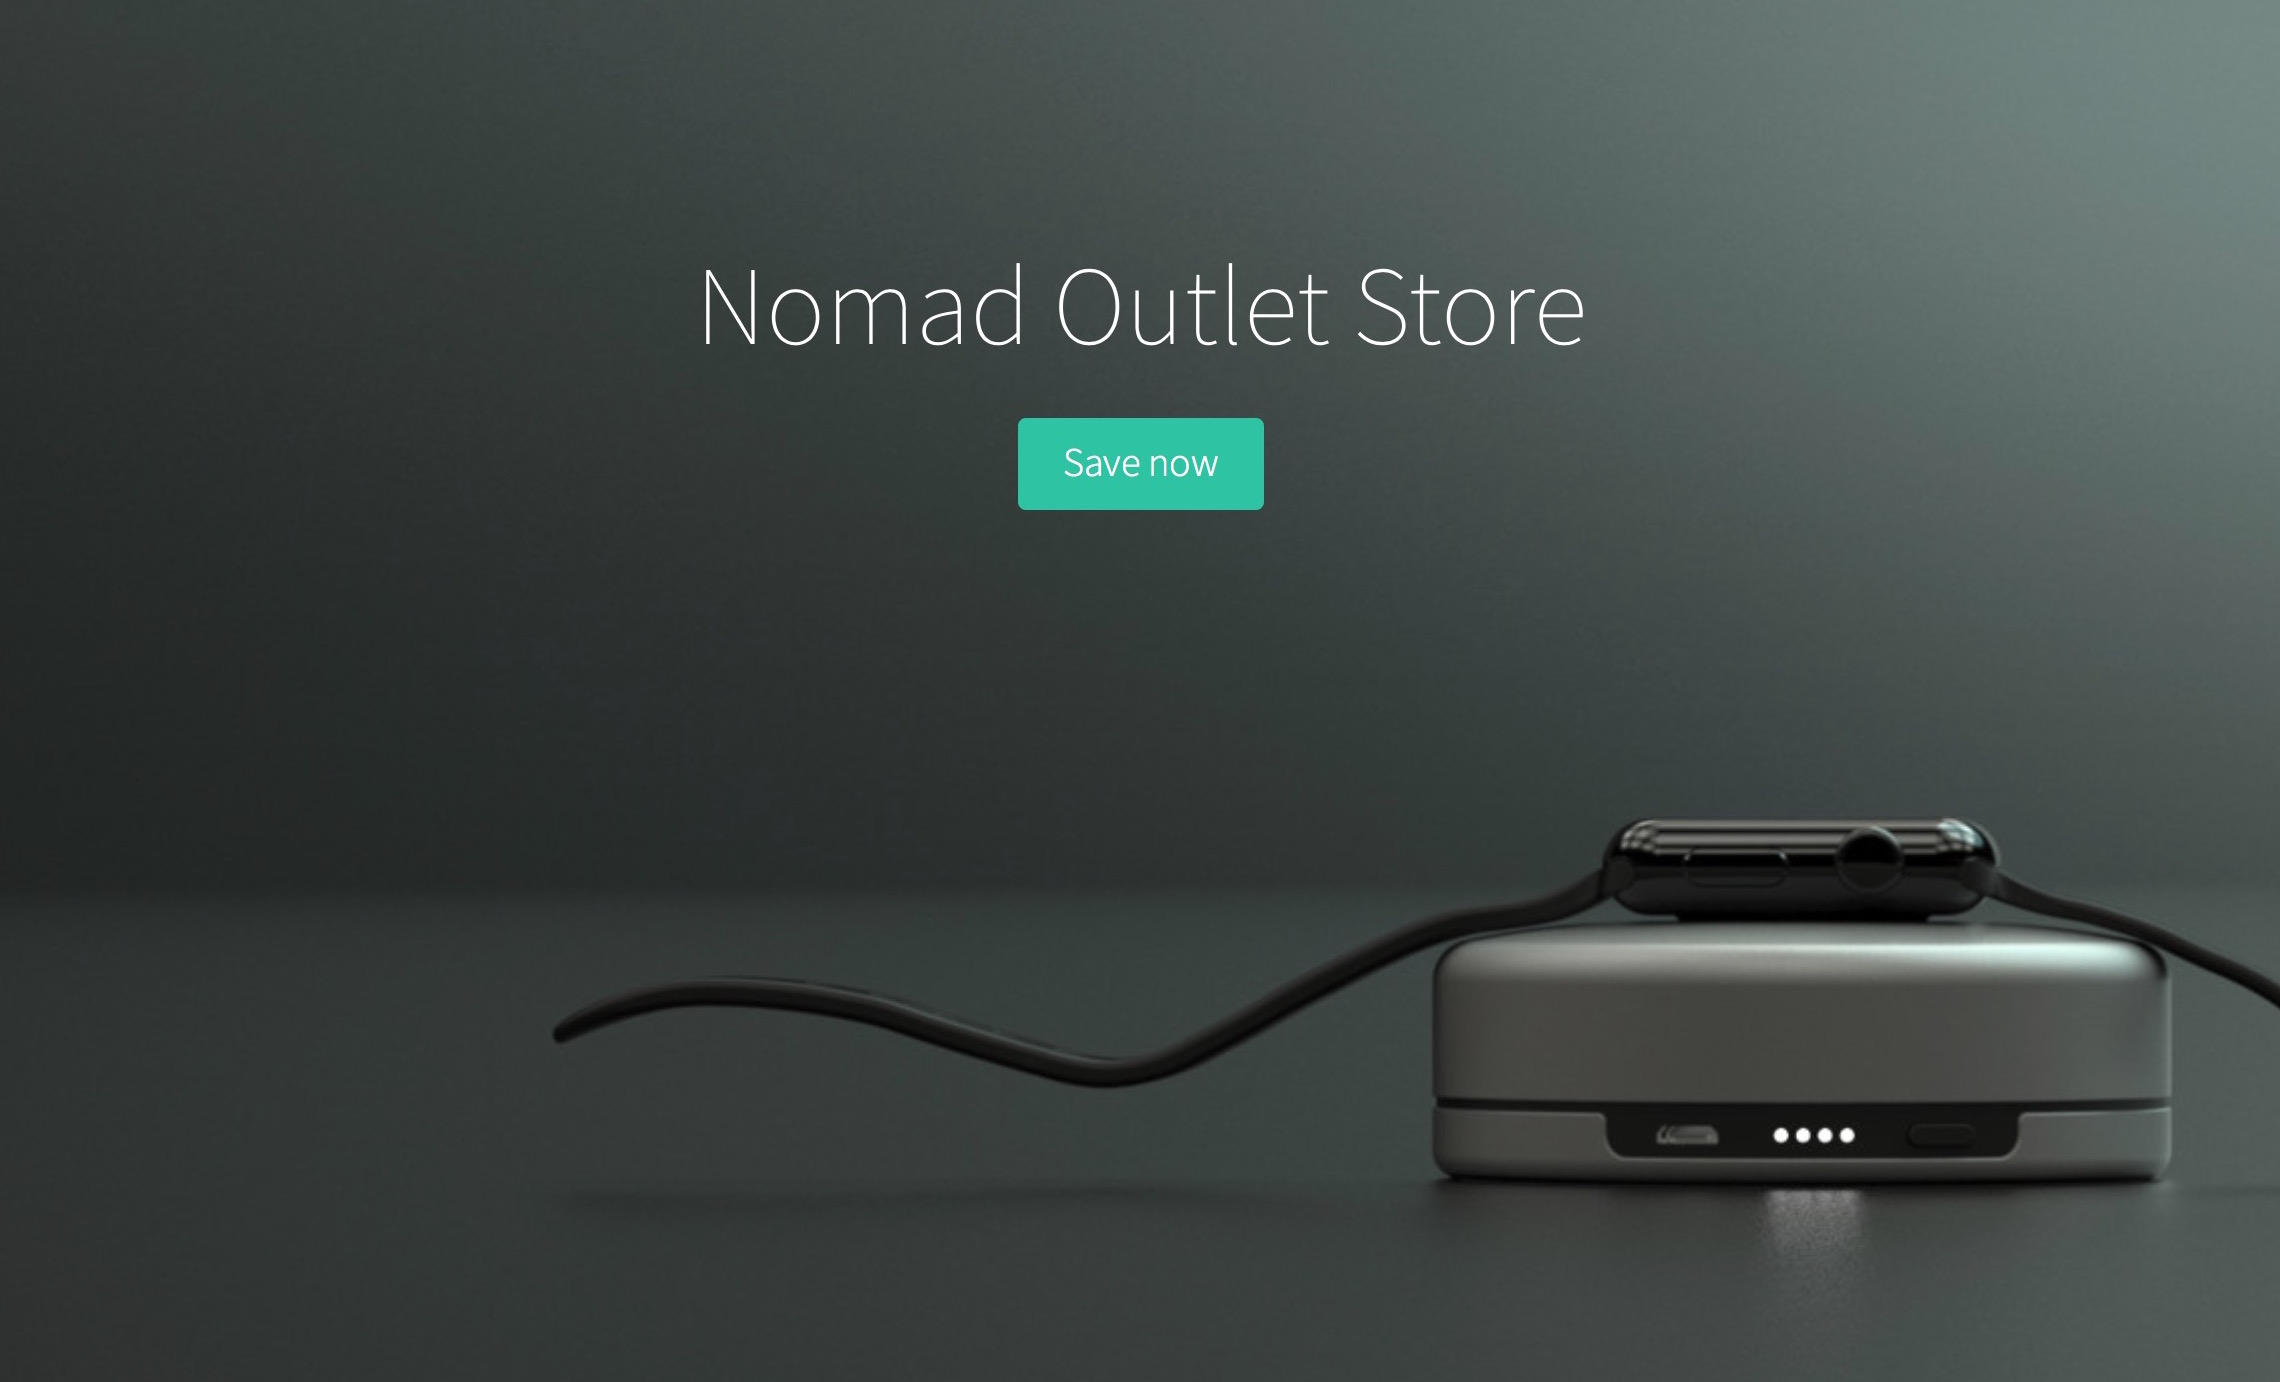 nomad outlet